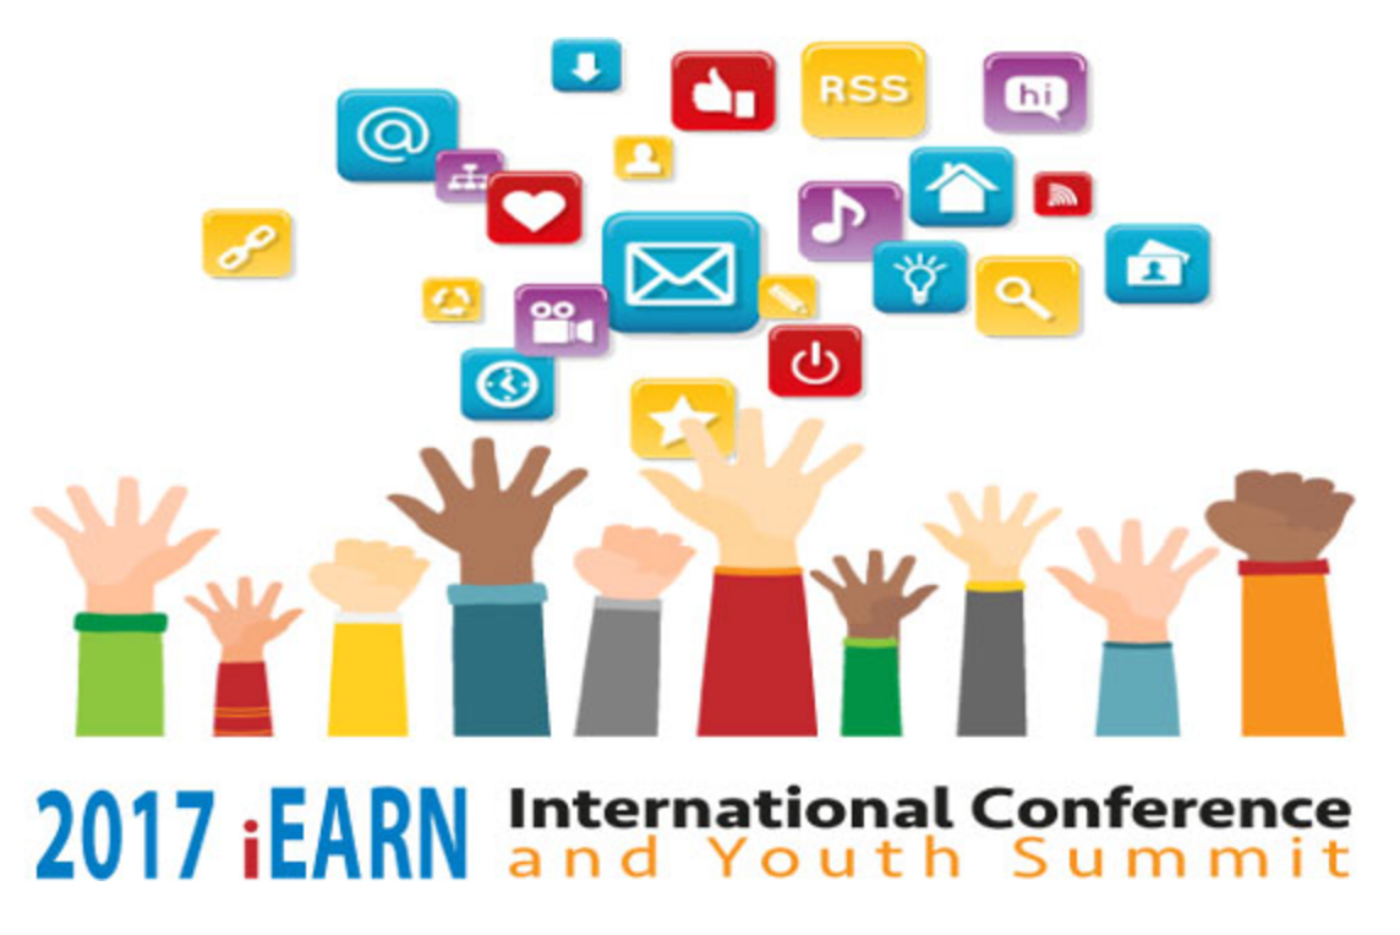 Register Now to Attend the 2017 iEARN Conference and Youth Summit.